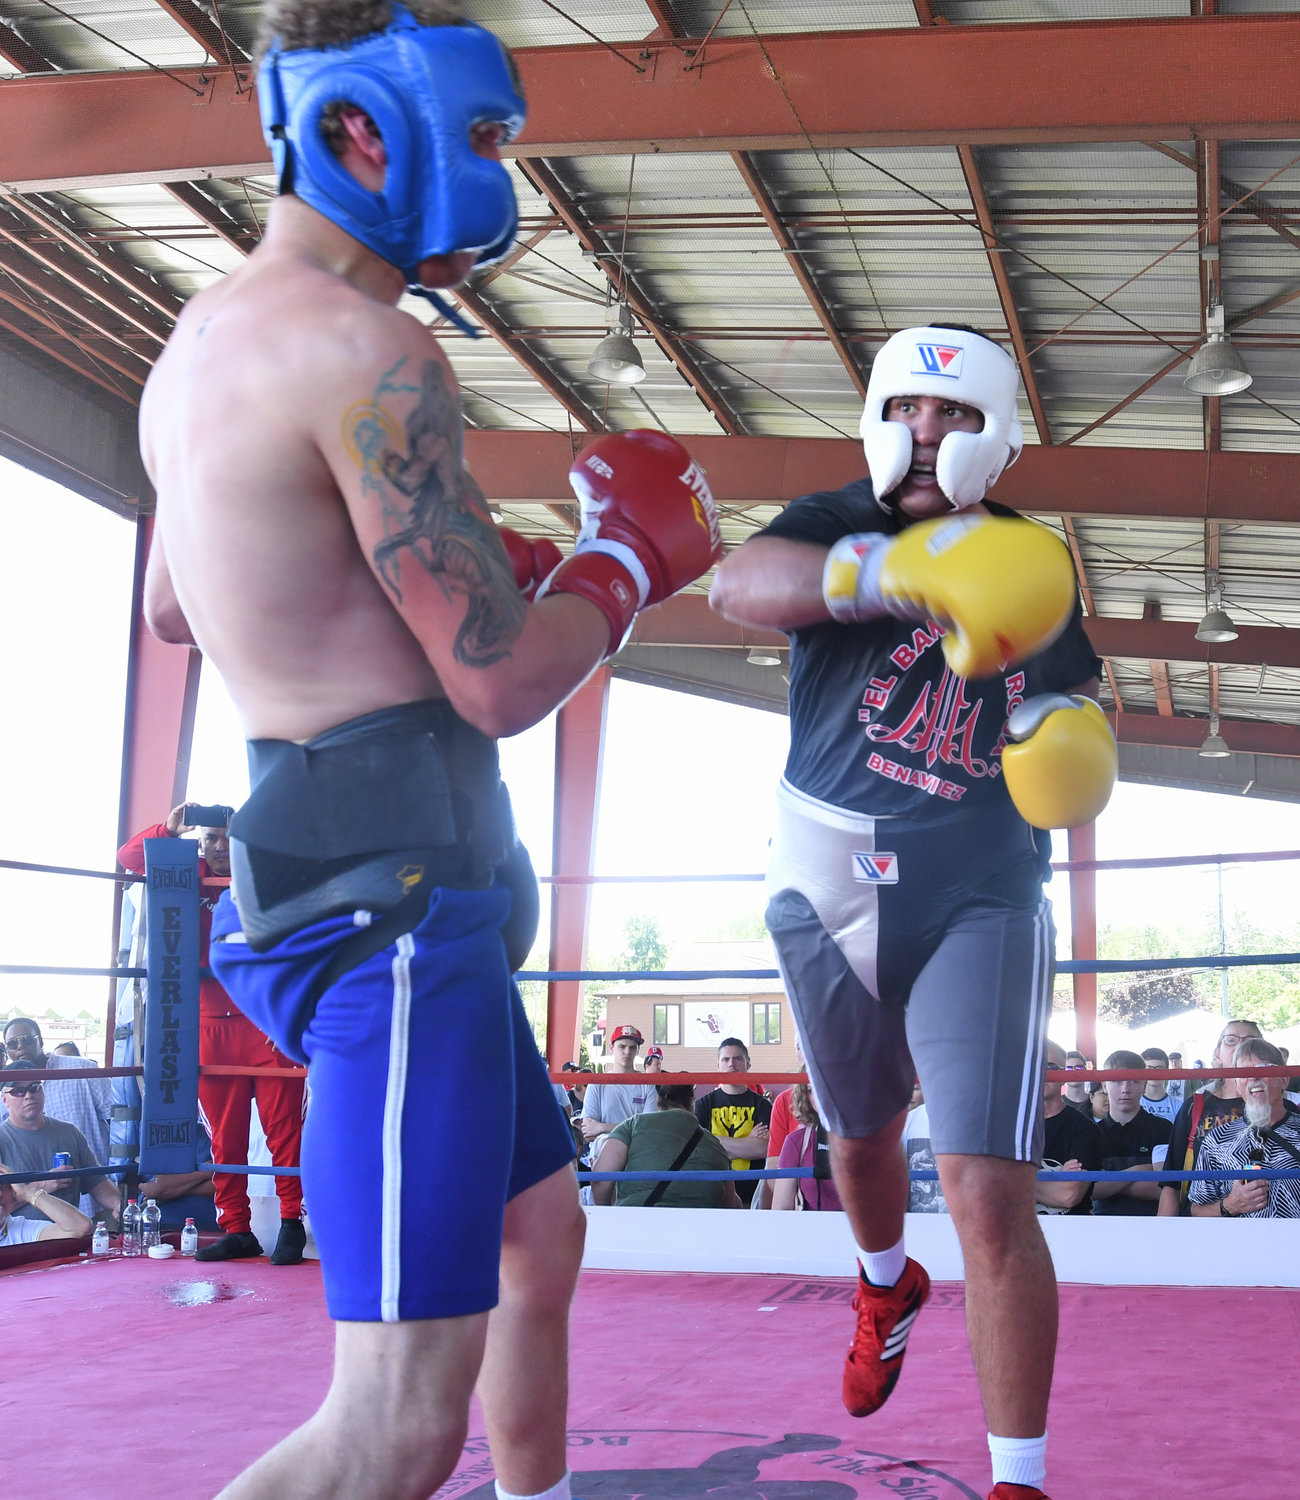 WORKOUT SESSION — Utica boxer Micheal Rycraft was the sparring partner of former World Boxing Council super middleweight champion David Benavidez during a public workout session at the International Boxing Hall of Fame on Friday afternoon.